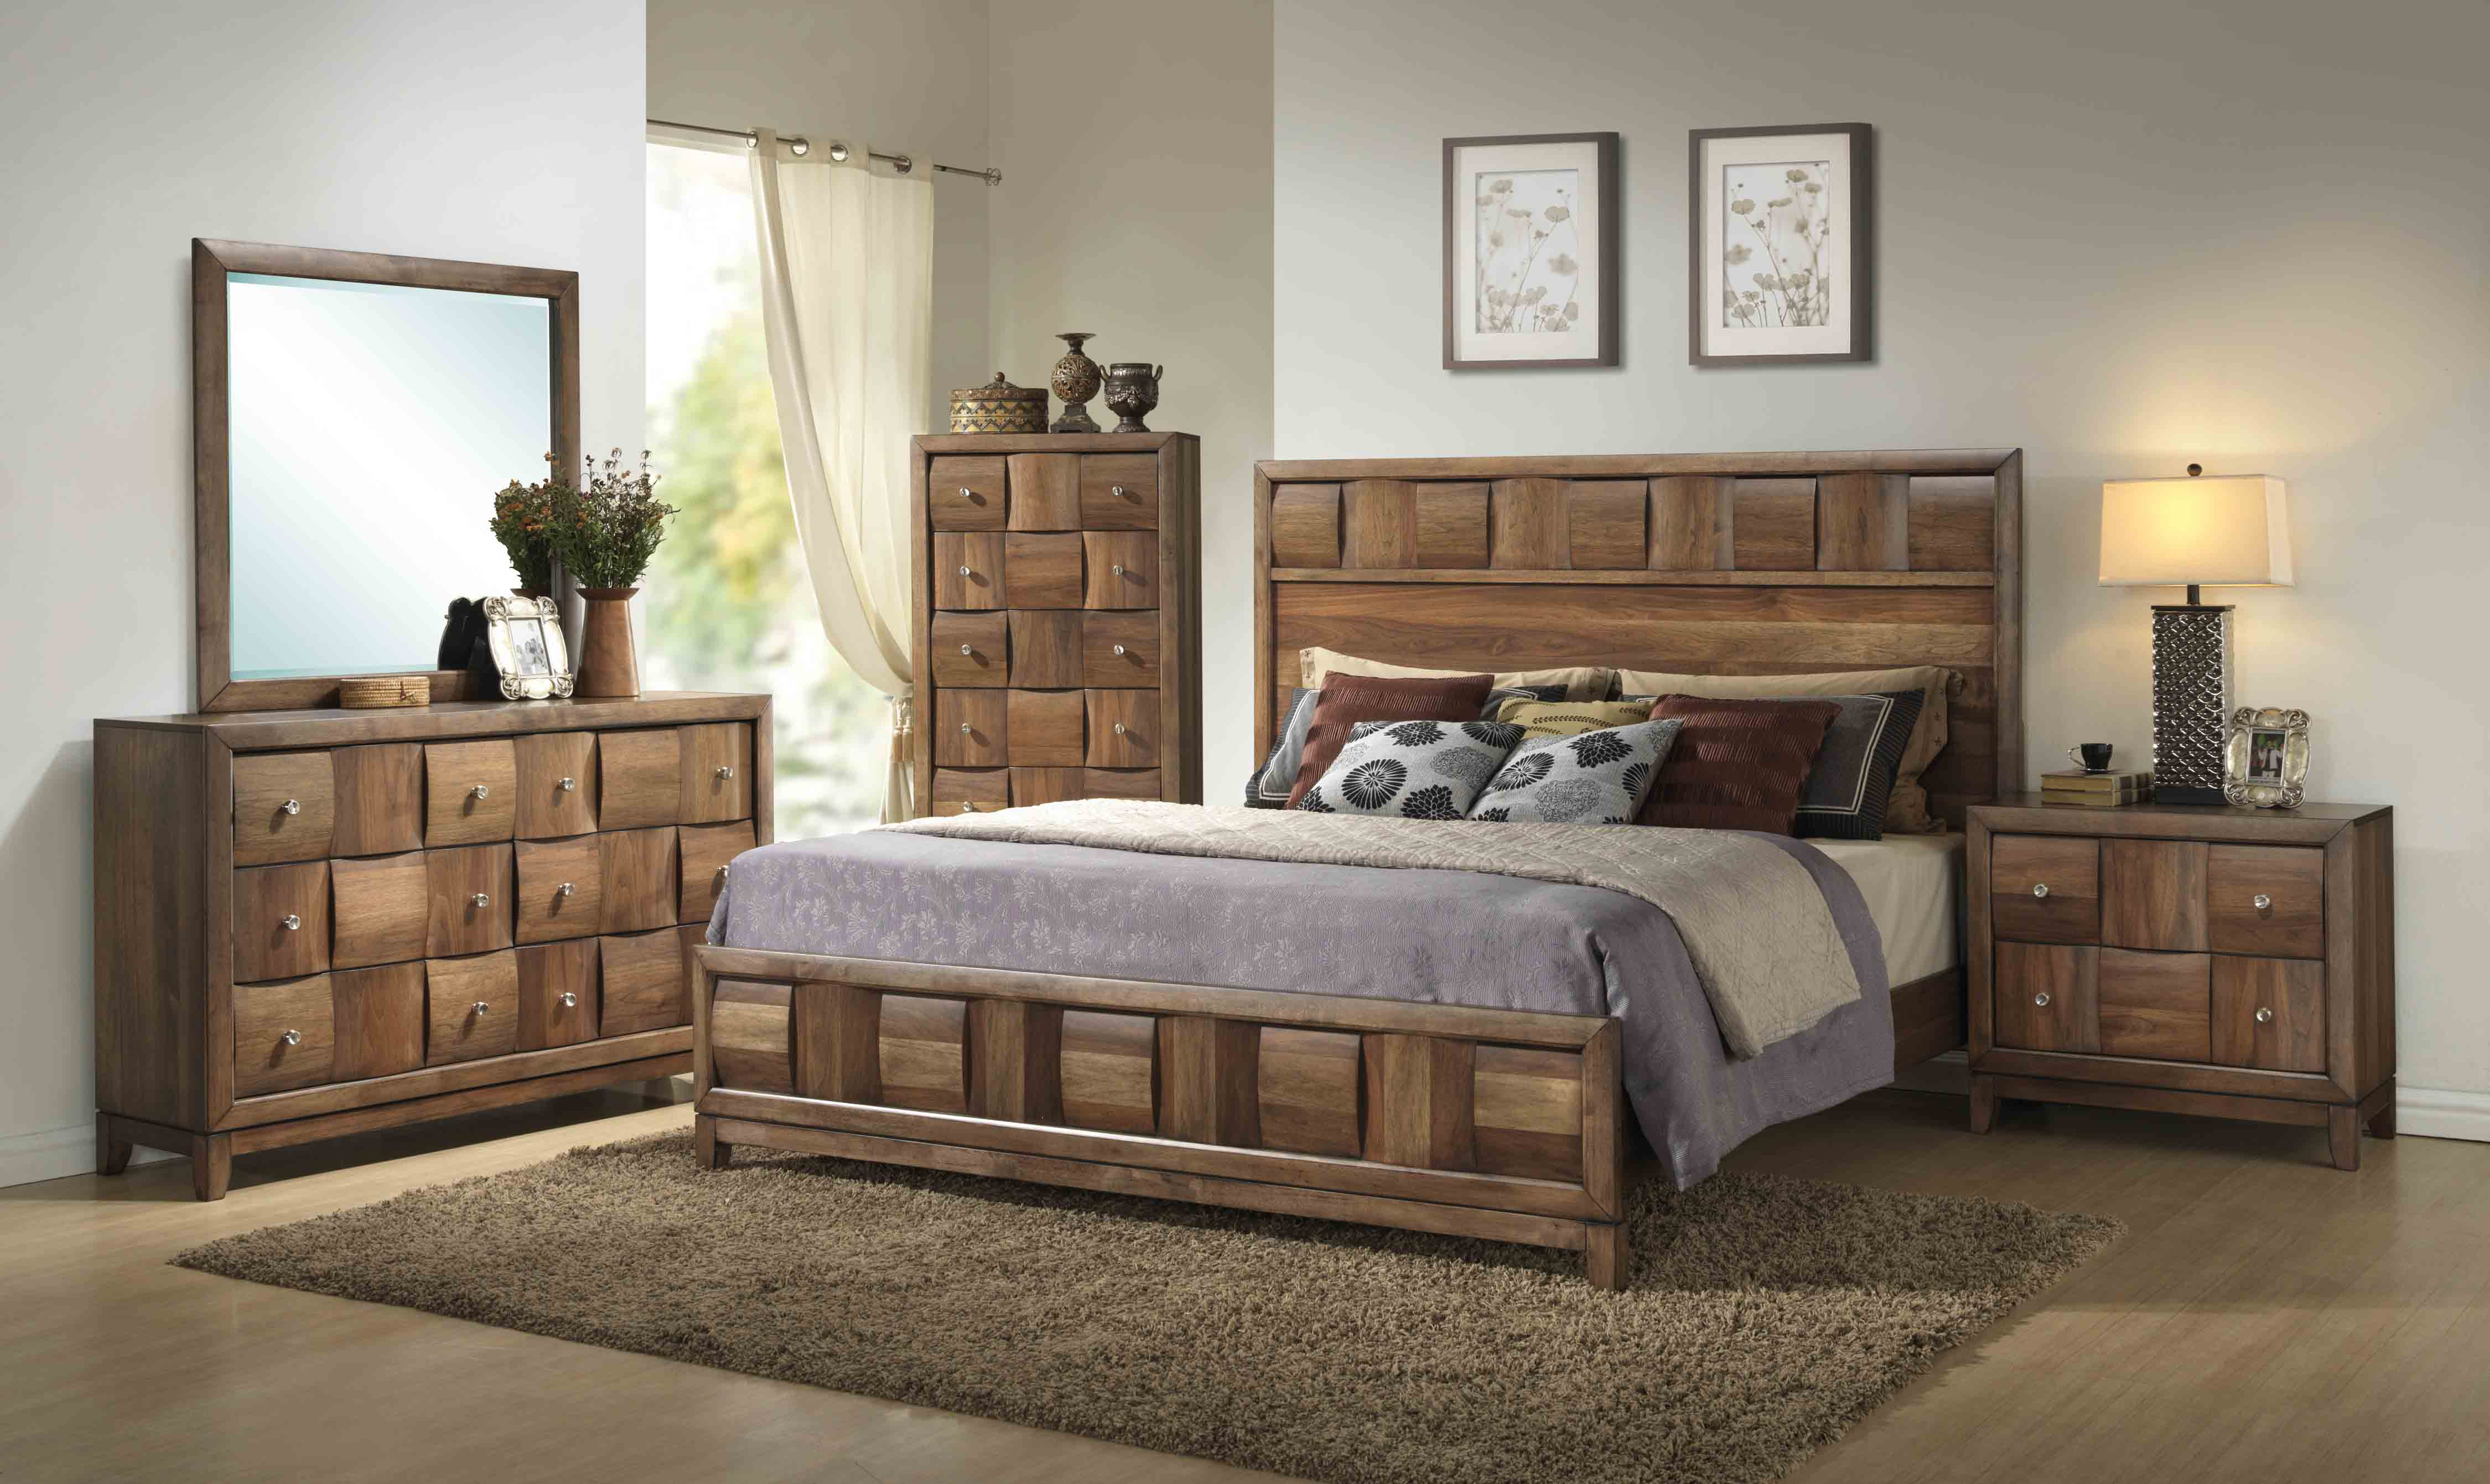 solid wood bedroom furniture offers sturdy options UCEMPQI